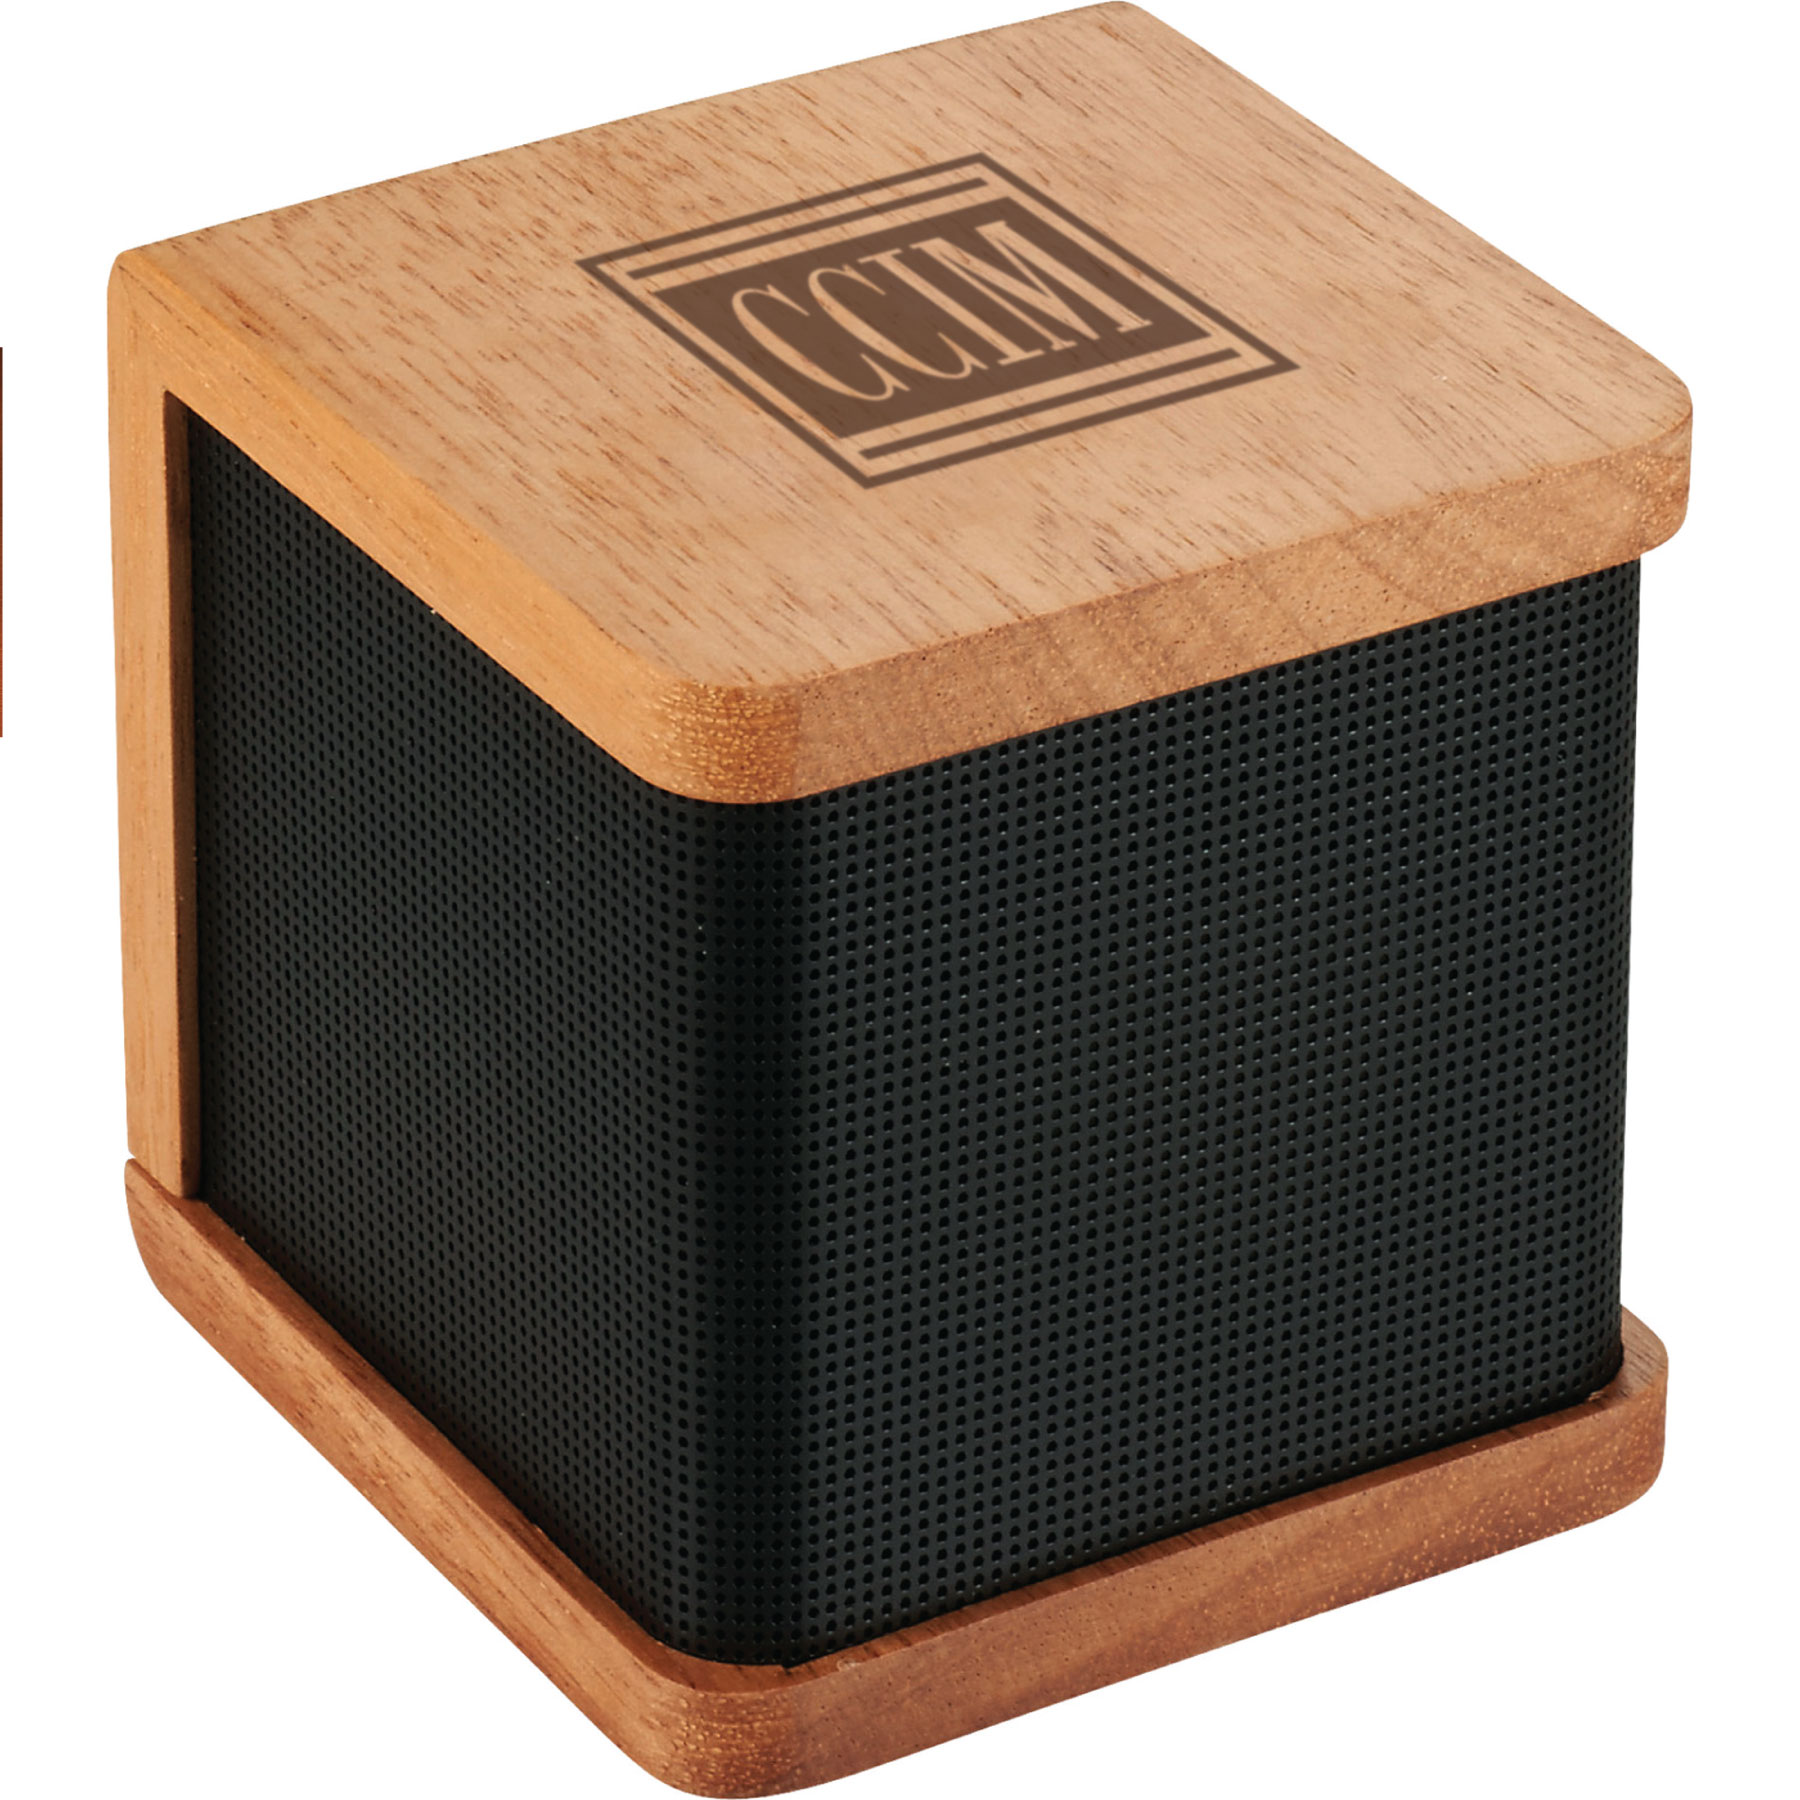 CCIM Wooden Bluetooth Speaker Speakers,Bluetooths,Radio,MP3,Songs,